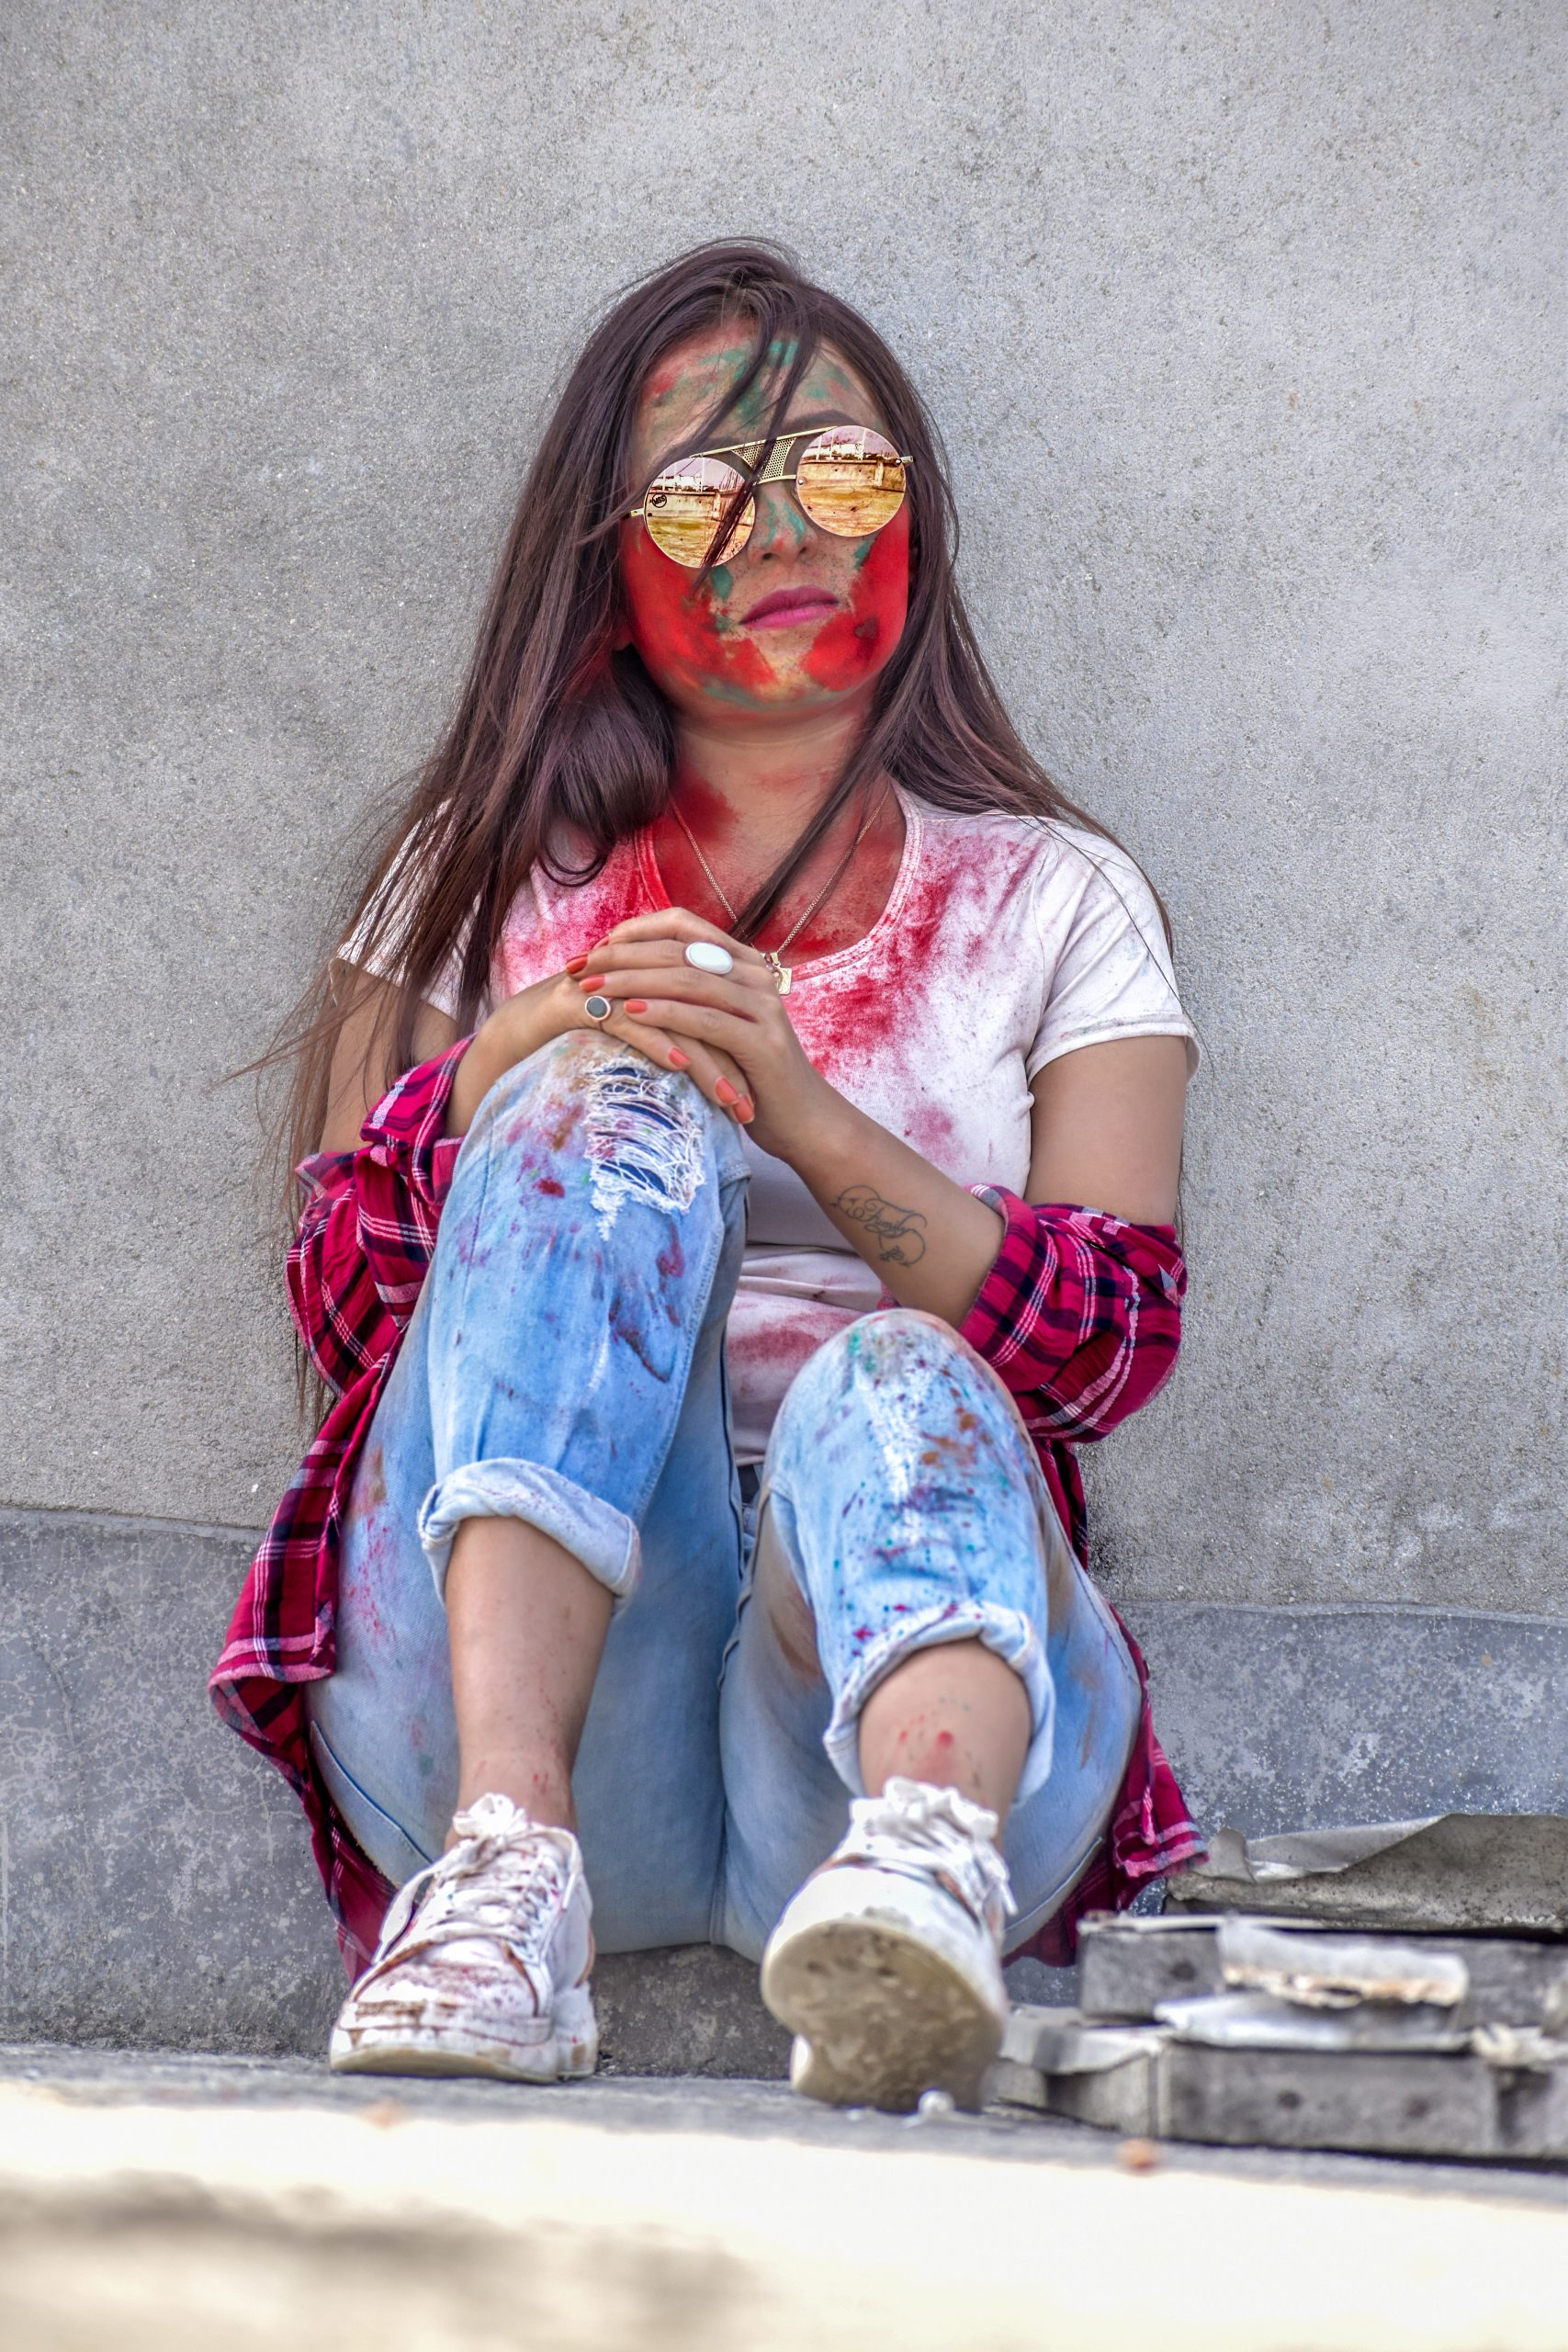 A city girl after playing with Holi colors